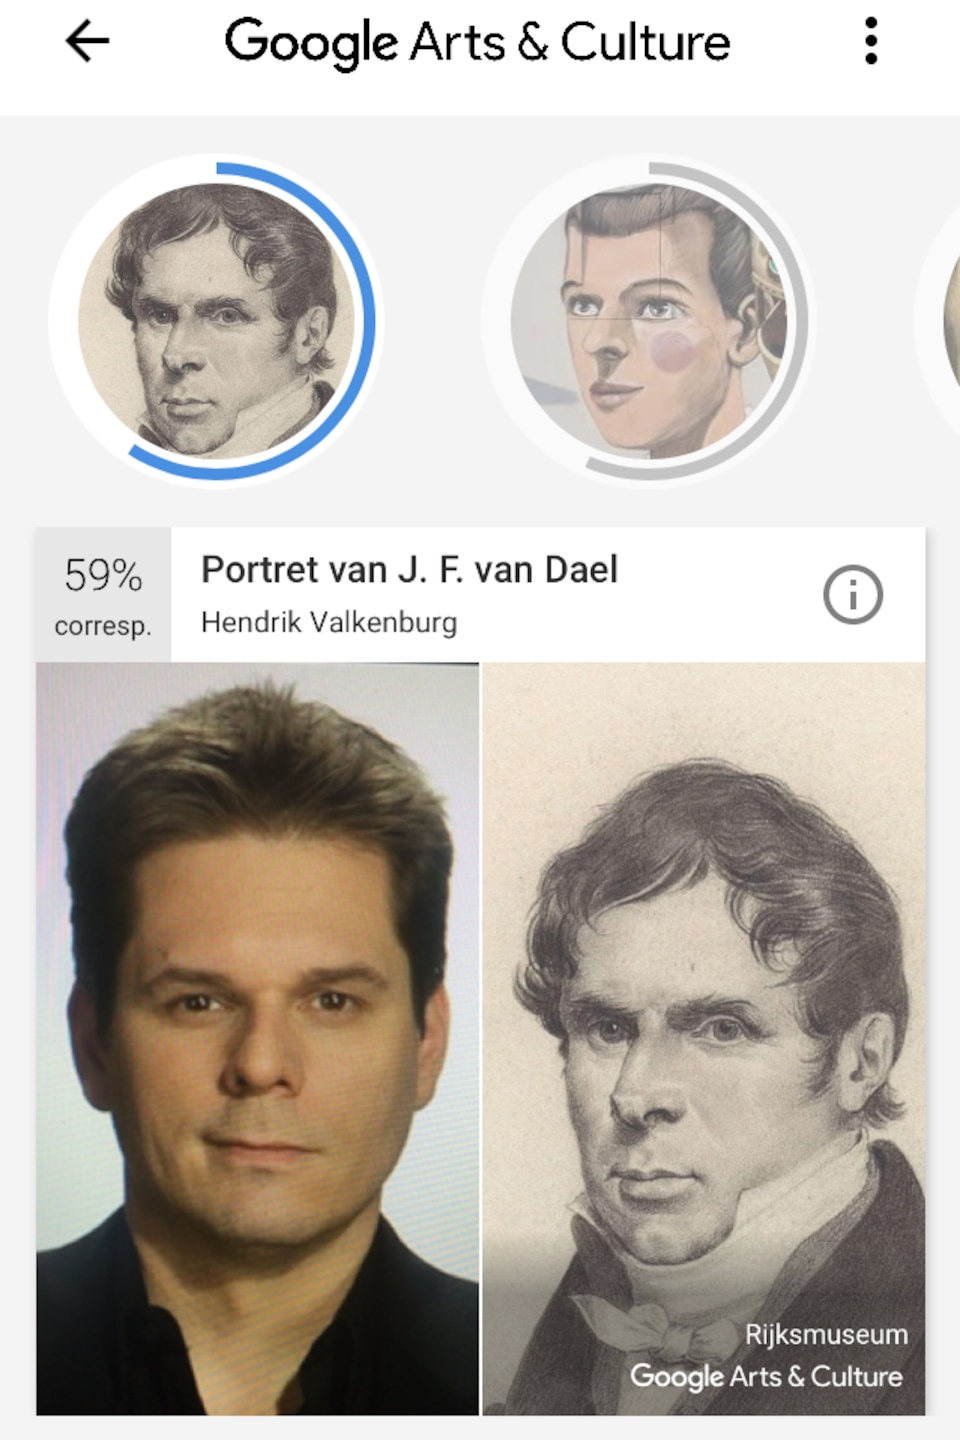 Google Arts & Culture / Patrick Lagacé